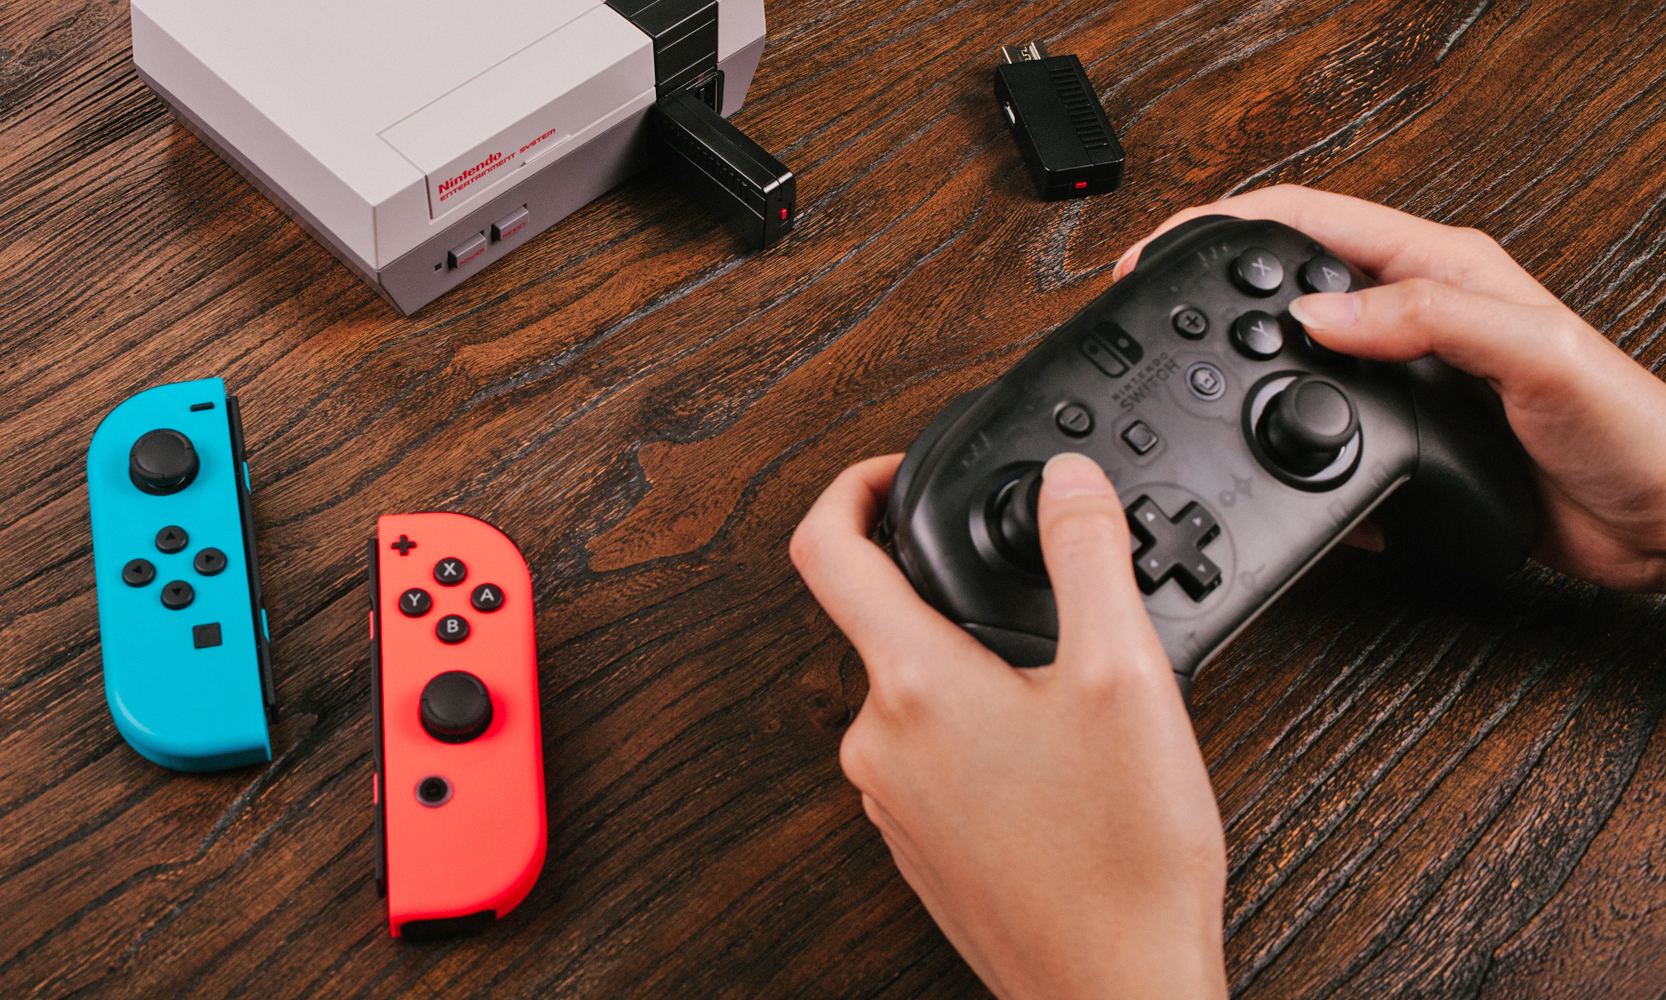 Modojo | You Can Now Play The NES Classic Edition With Joy-Con Controllers